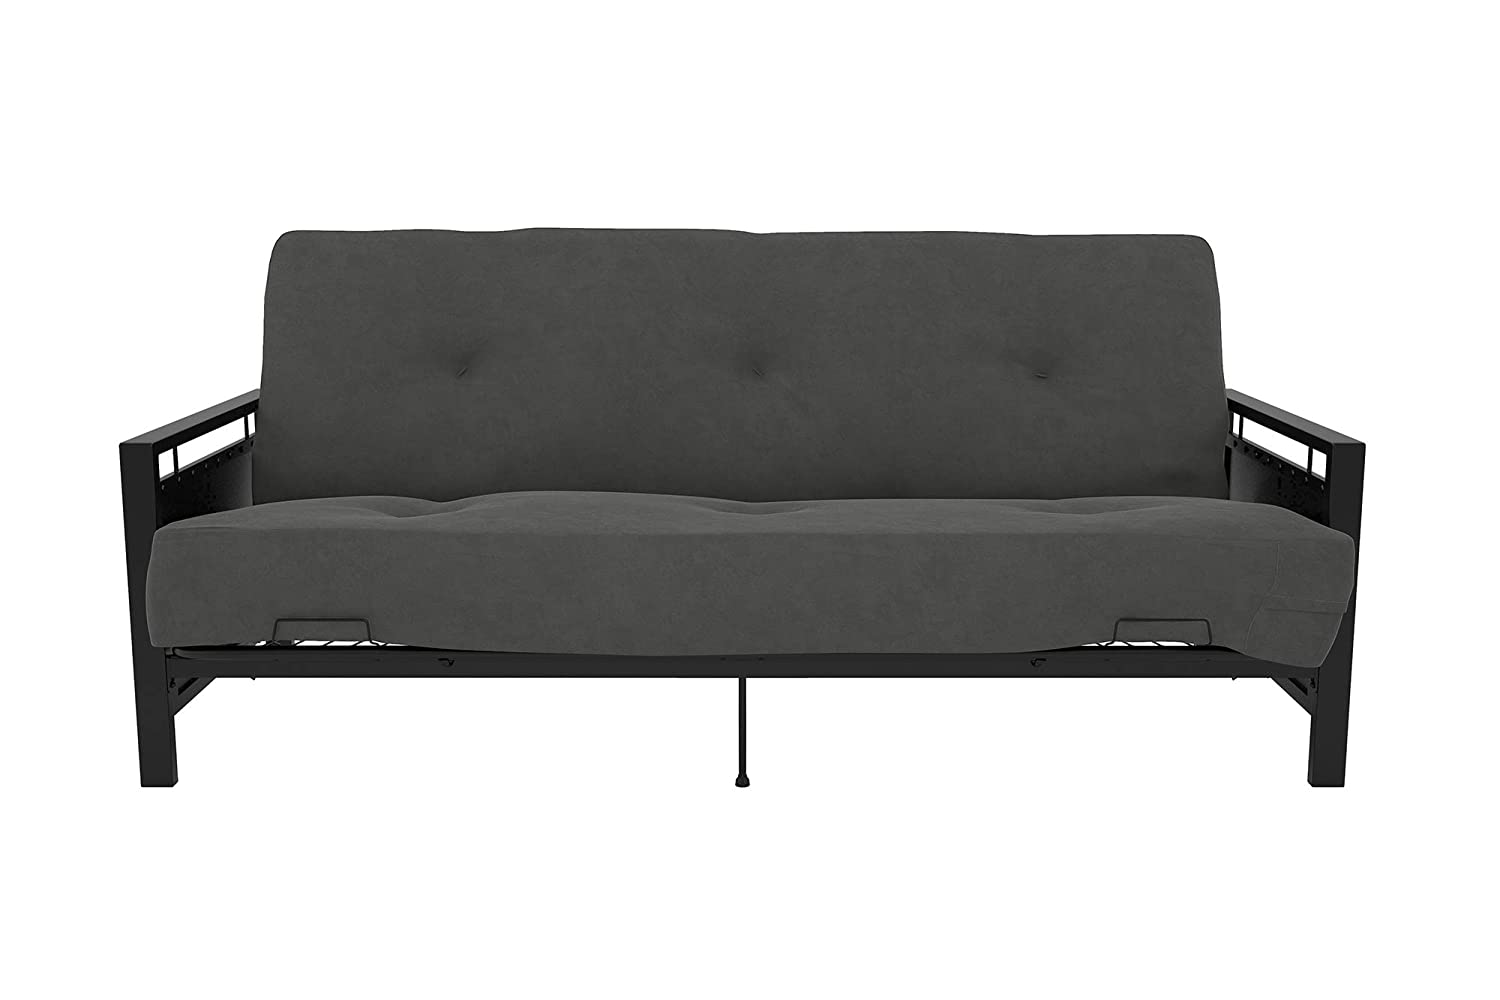 DHP Henley Metal Arm Futon Frame, Industrial Loft Design, Converts to Sleeper, Black Sturdy Metal 2185059